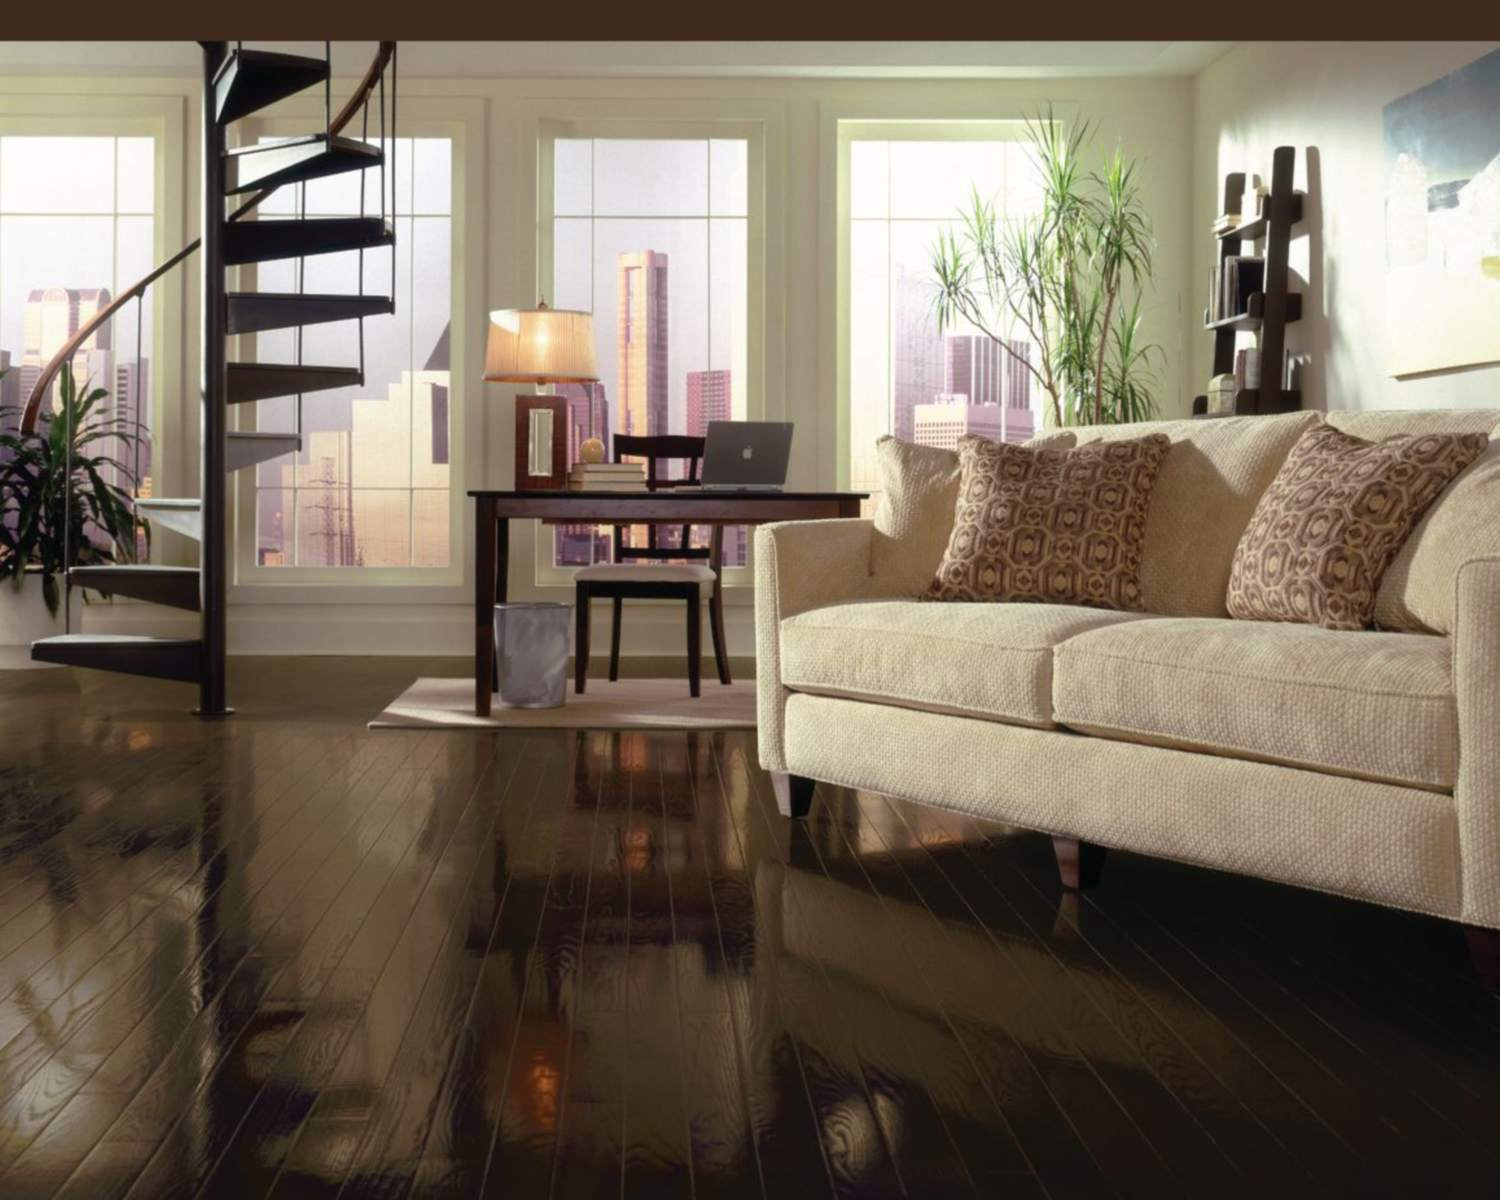 Hardwood Flooring Grades Canada Of top 5 Brands for solid Hardwood Flooring Inside A Living Room with Bruce Espresso Oak Flooring